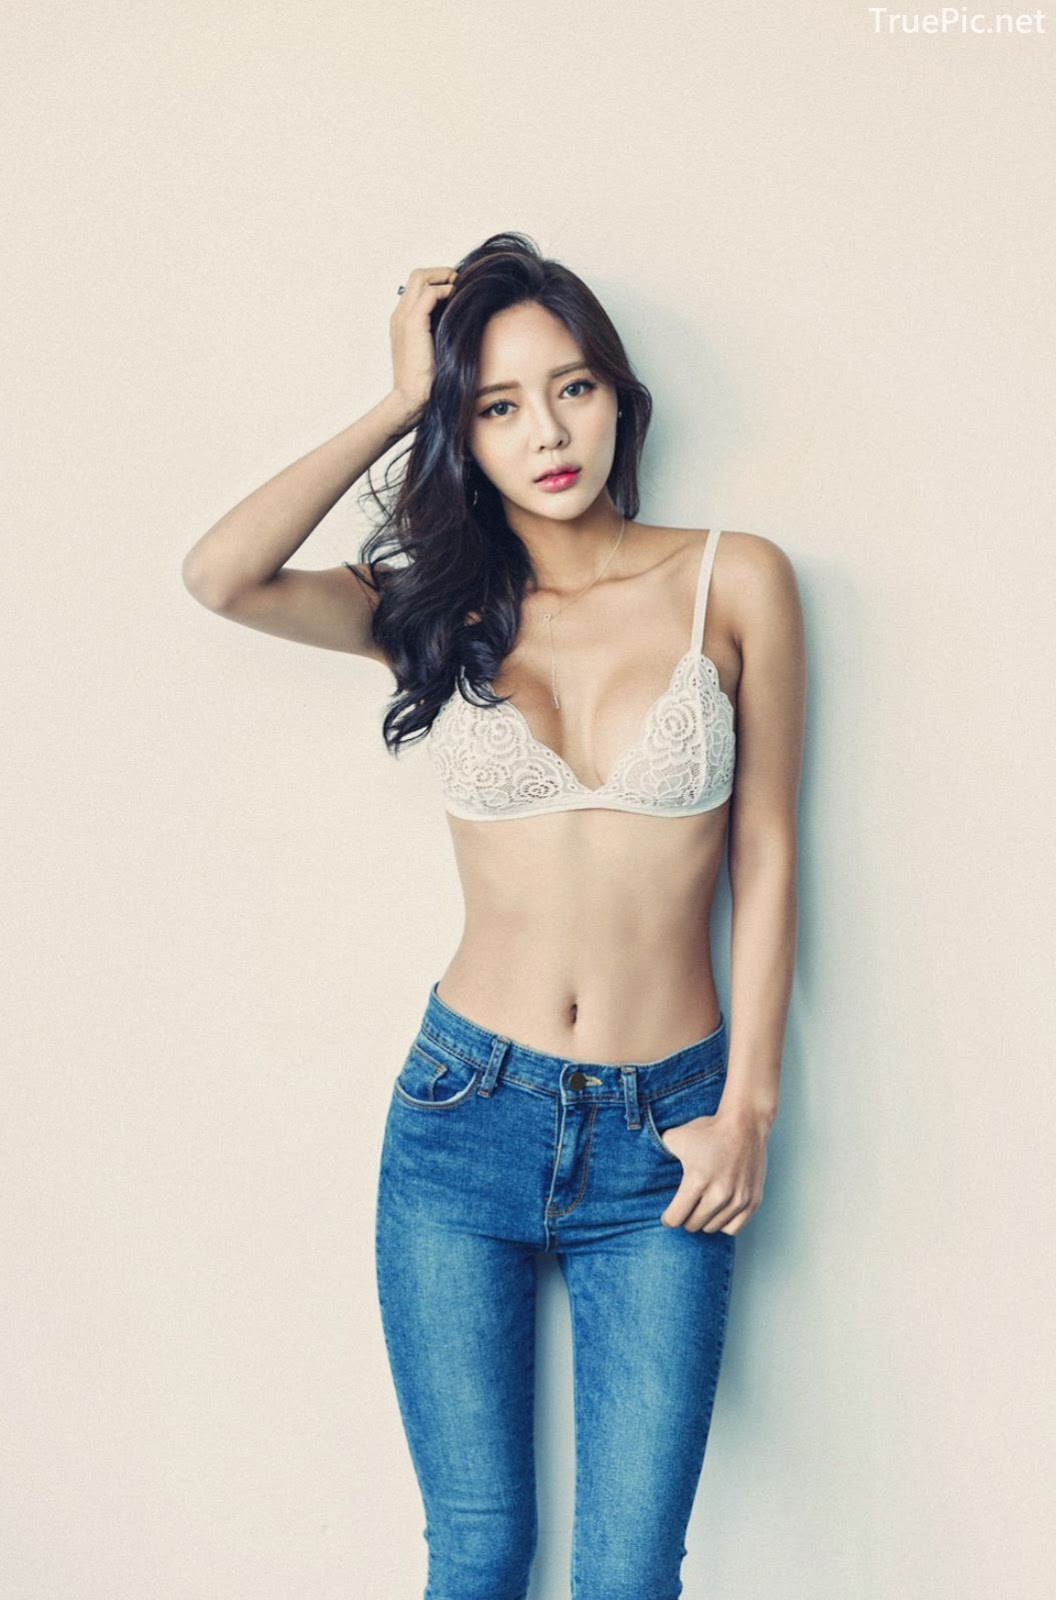 Korean Lingerie Queen - Kim Bo Ram - There's So Many Reason To Love You - TruePic.net- Picture 1